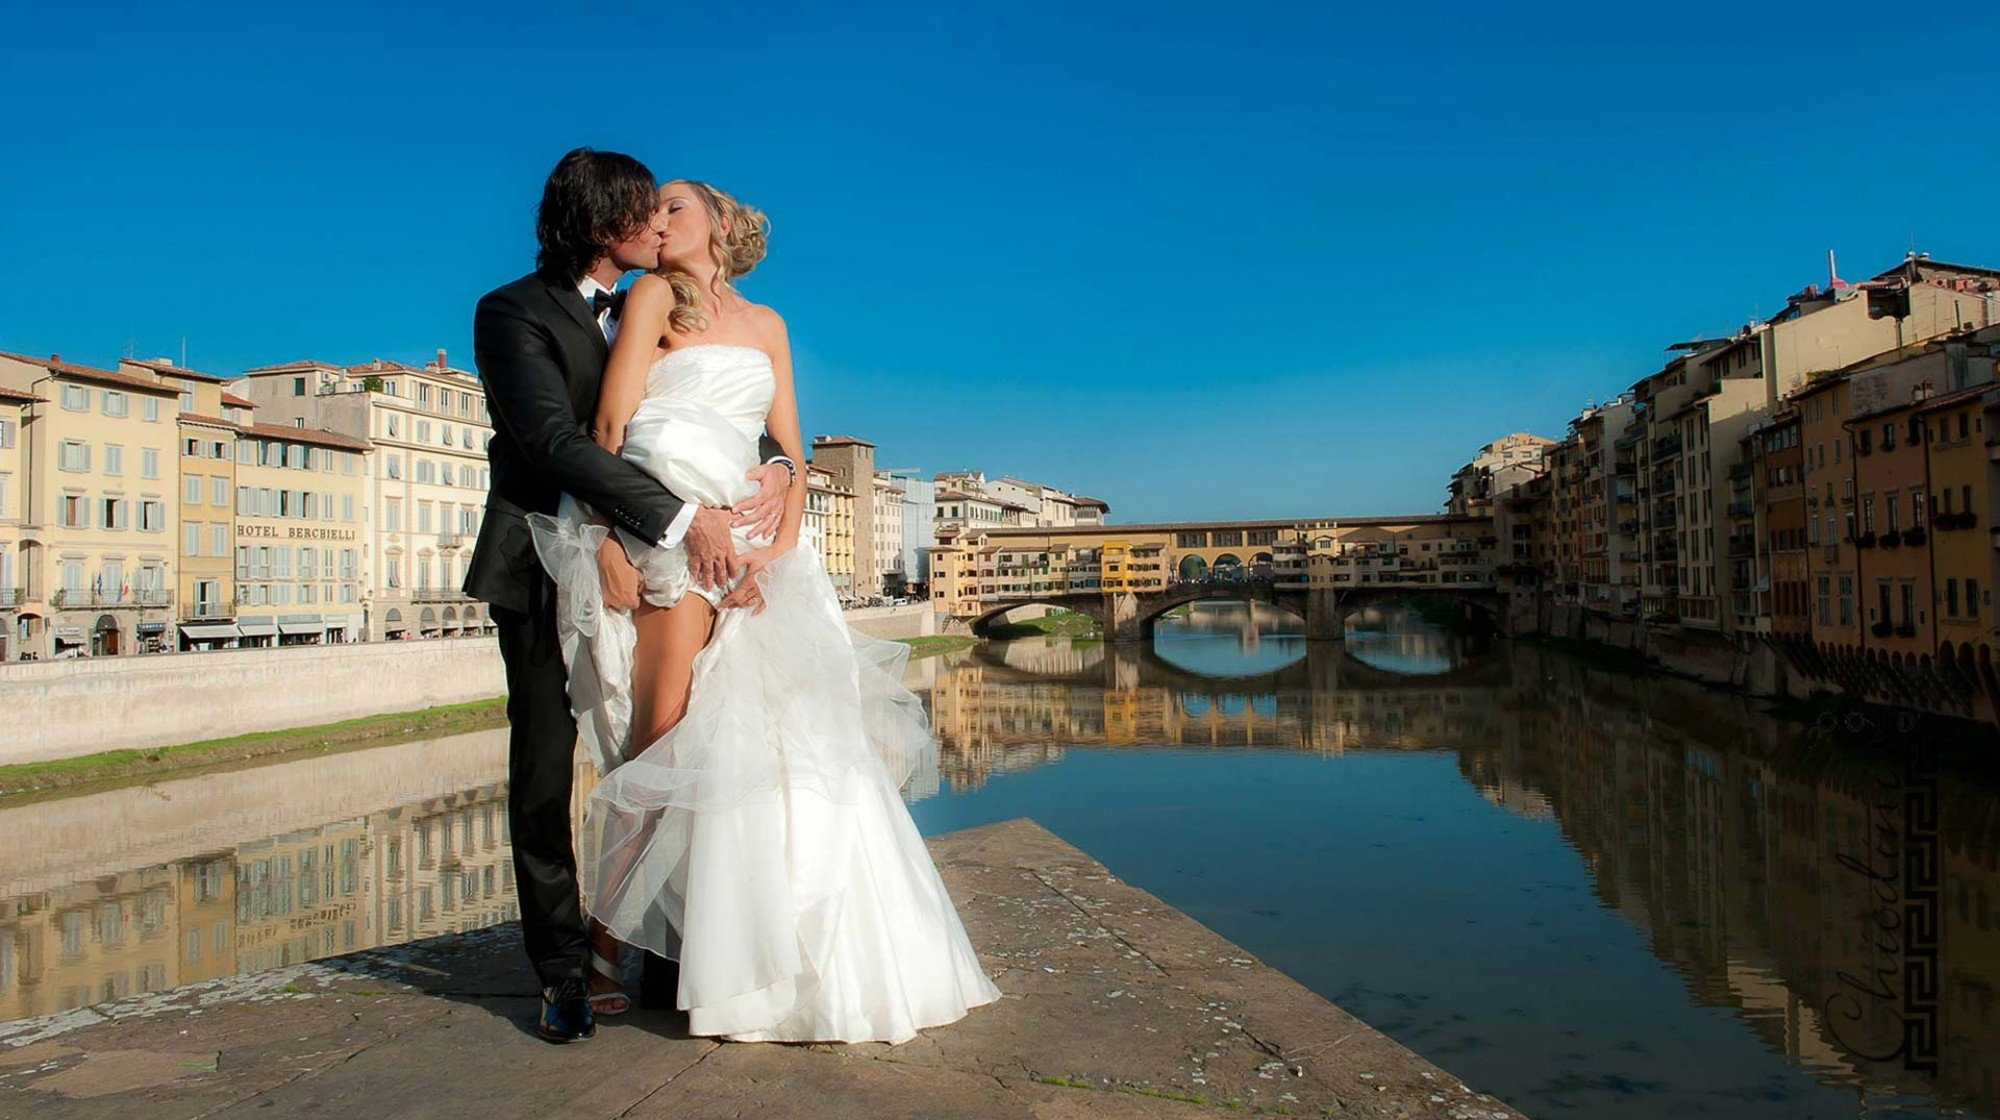 Matrimonio Giardino Toscana : Tuscan wedding photographer based in prato near florence